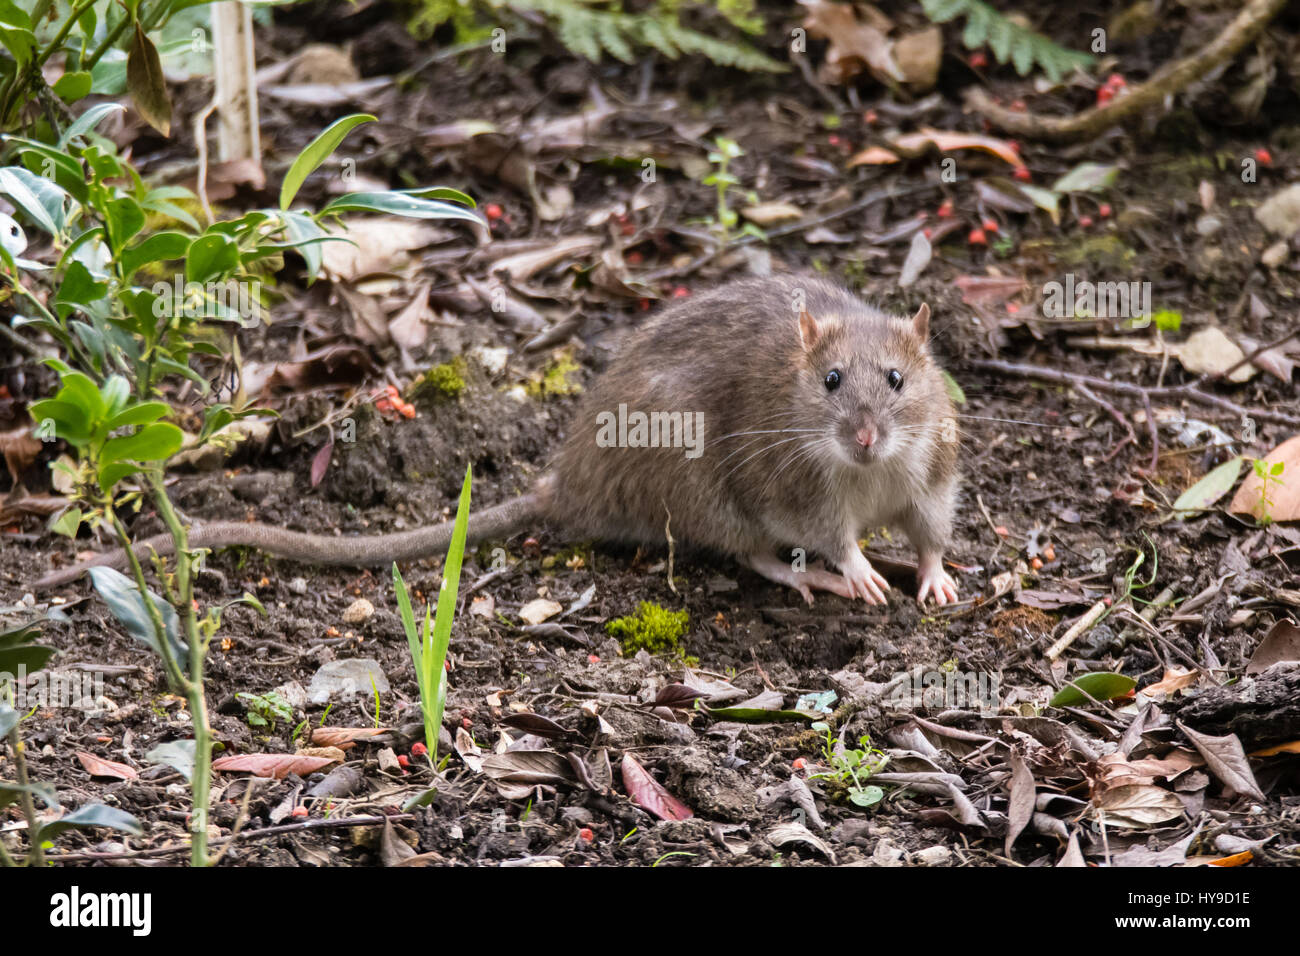 Brown rat (Rattus norvegicus) looking at camera. Common rodent foraging amongst plants in botanic garden, with impressive - Stock Image